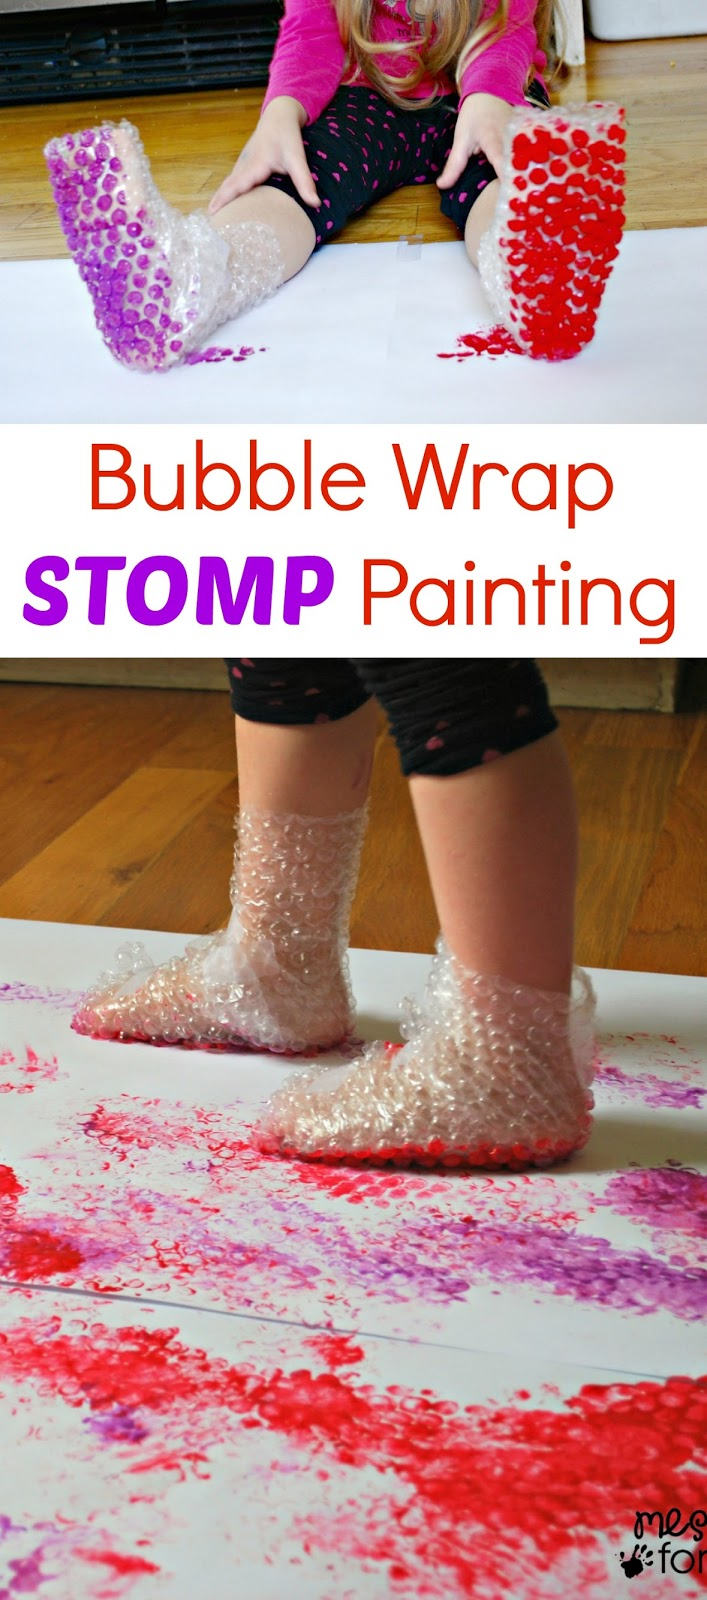 Bubble-wrap-stomp-painting.jpg